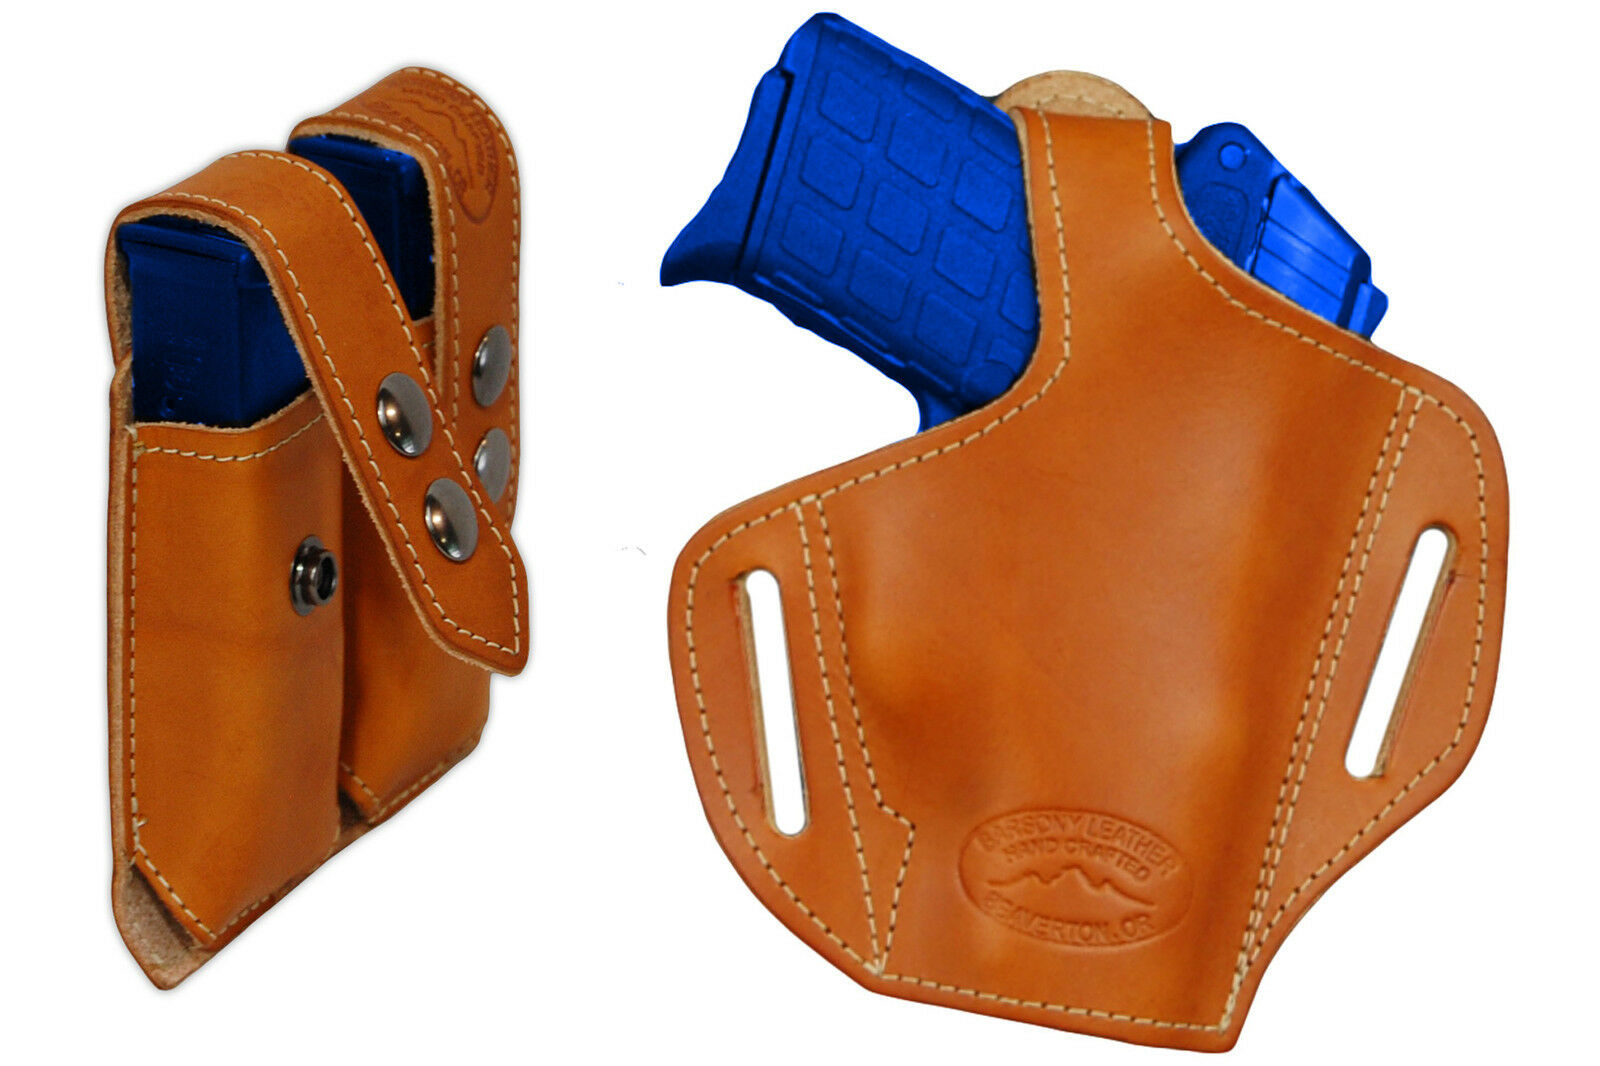 NEW Barsony Tan Leder Pancake Holster+Dbl Mag Pouch Ruger, Kimber Comp 9mm 40